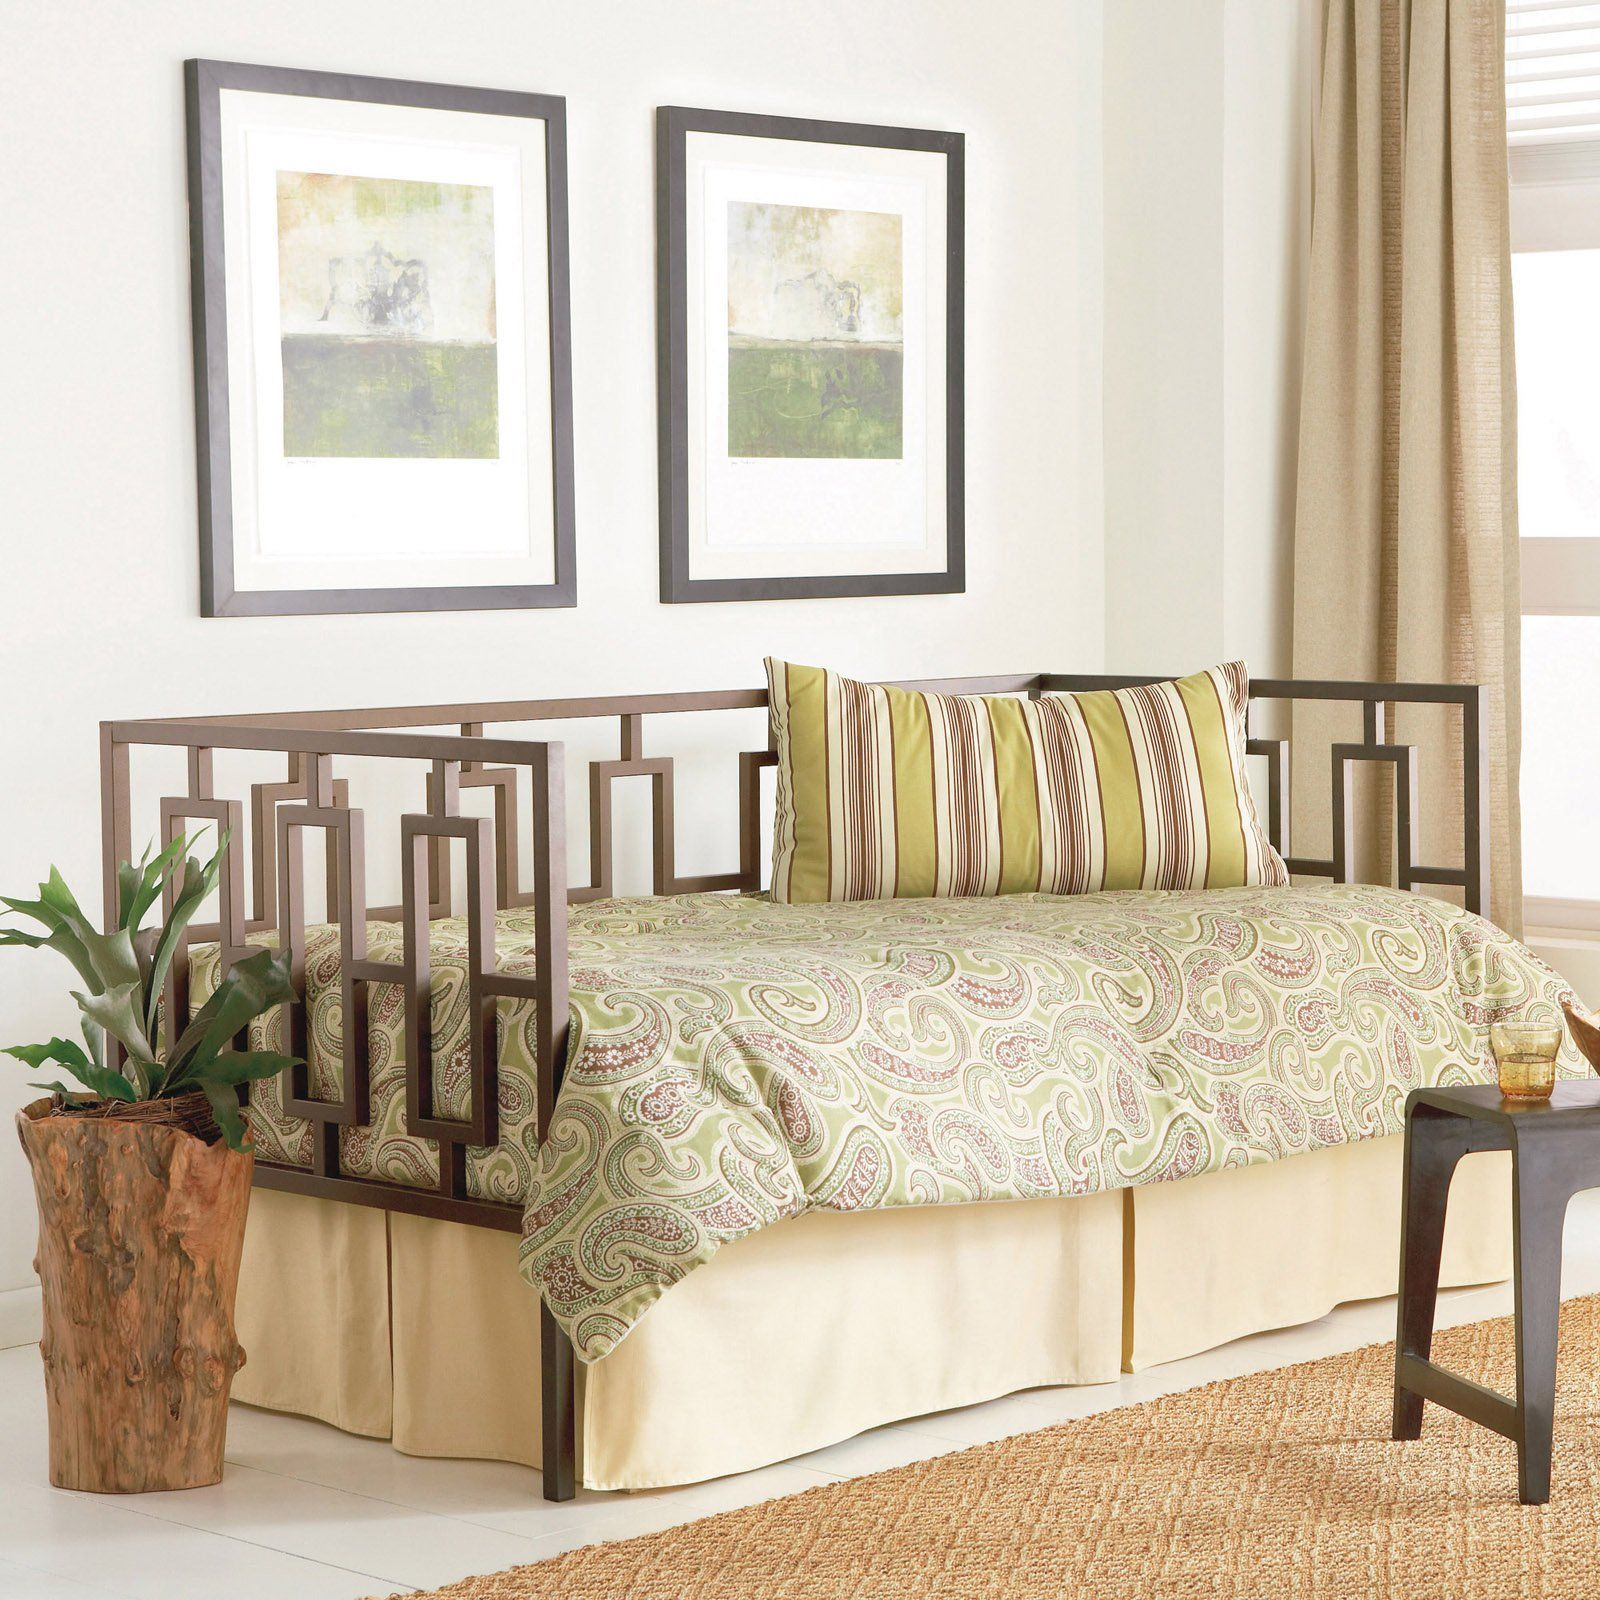 Fashion Bed Group Miami Daybed B60047 Products Metal